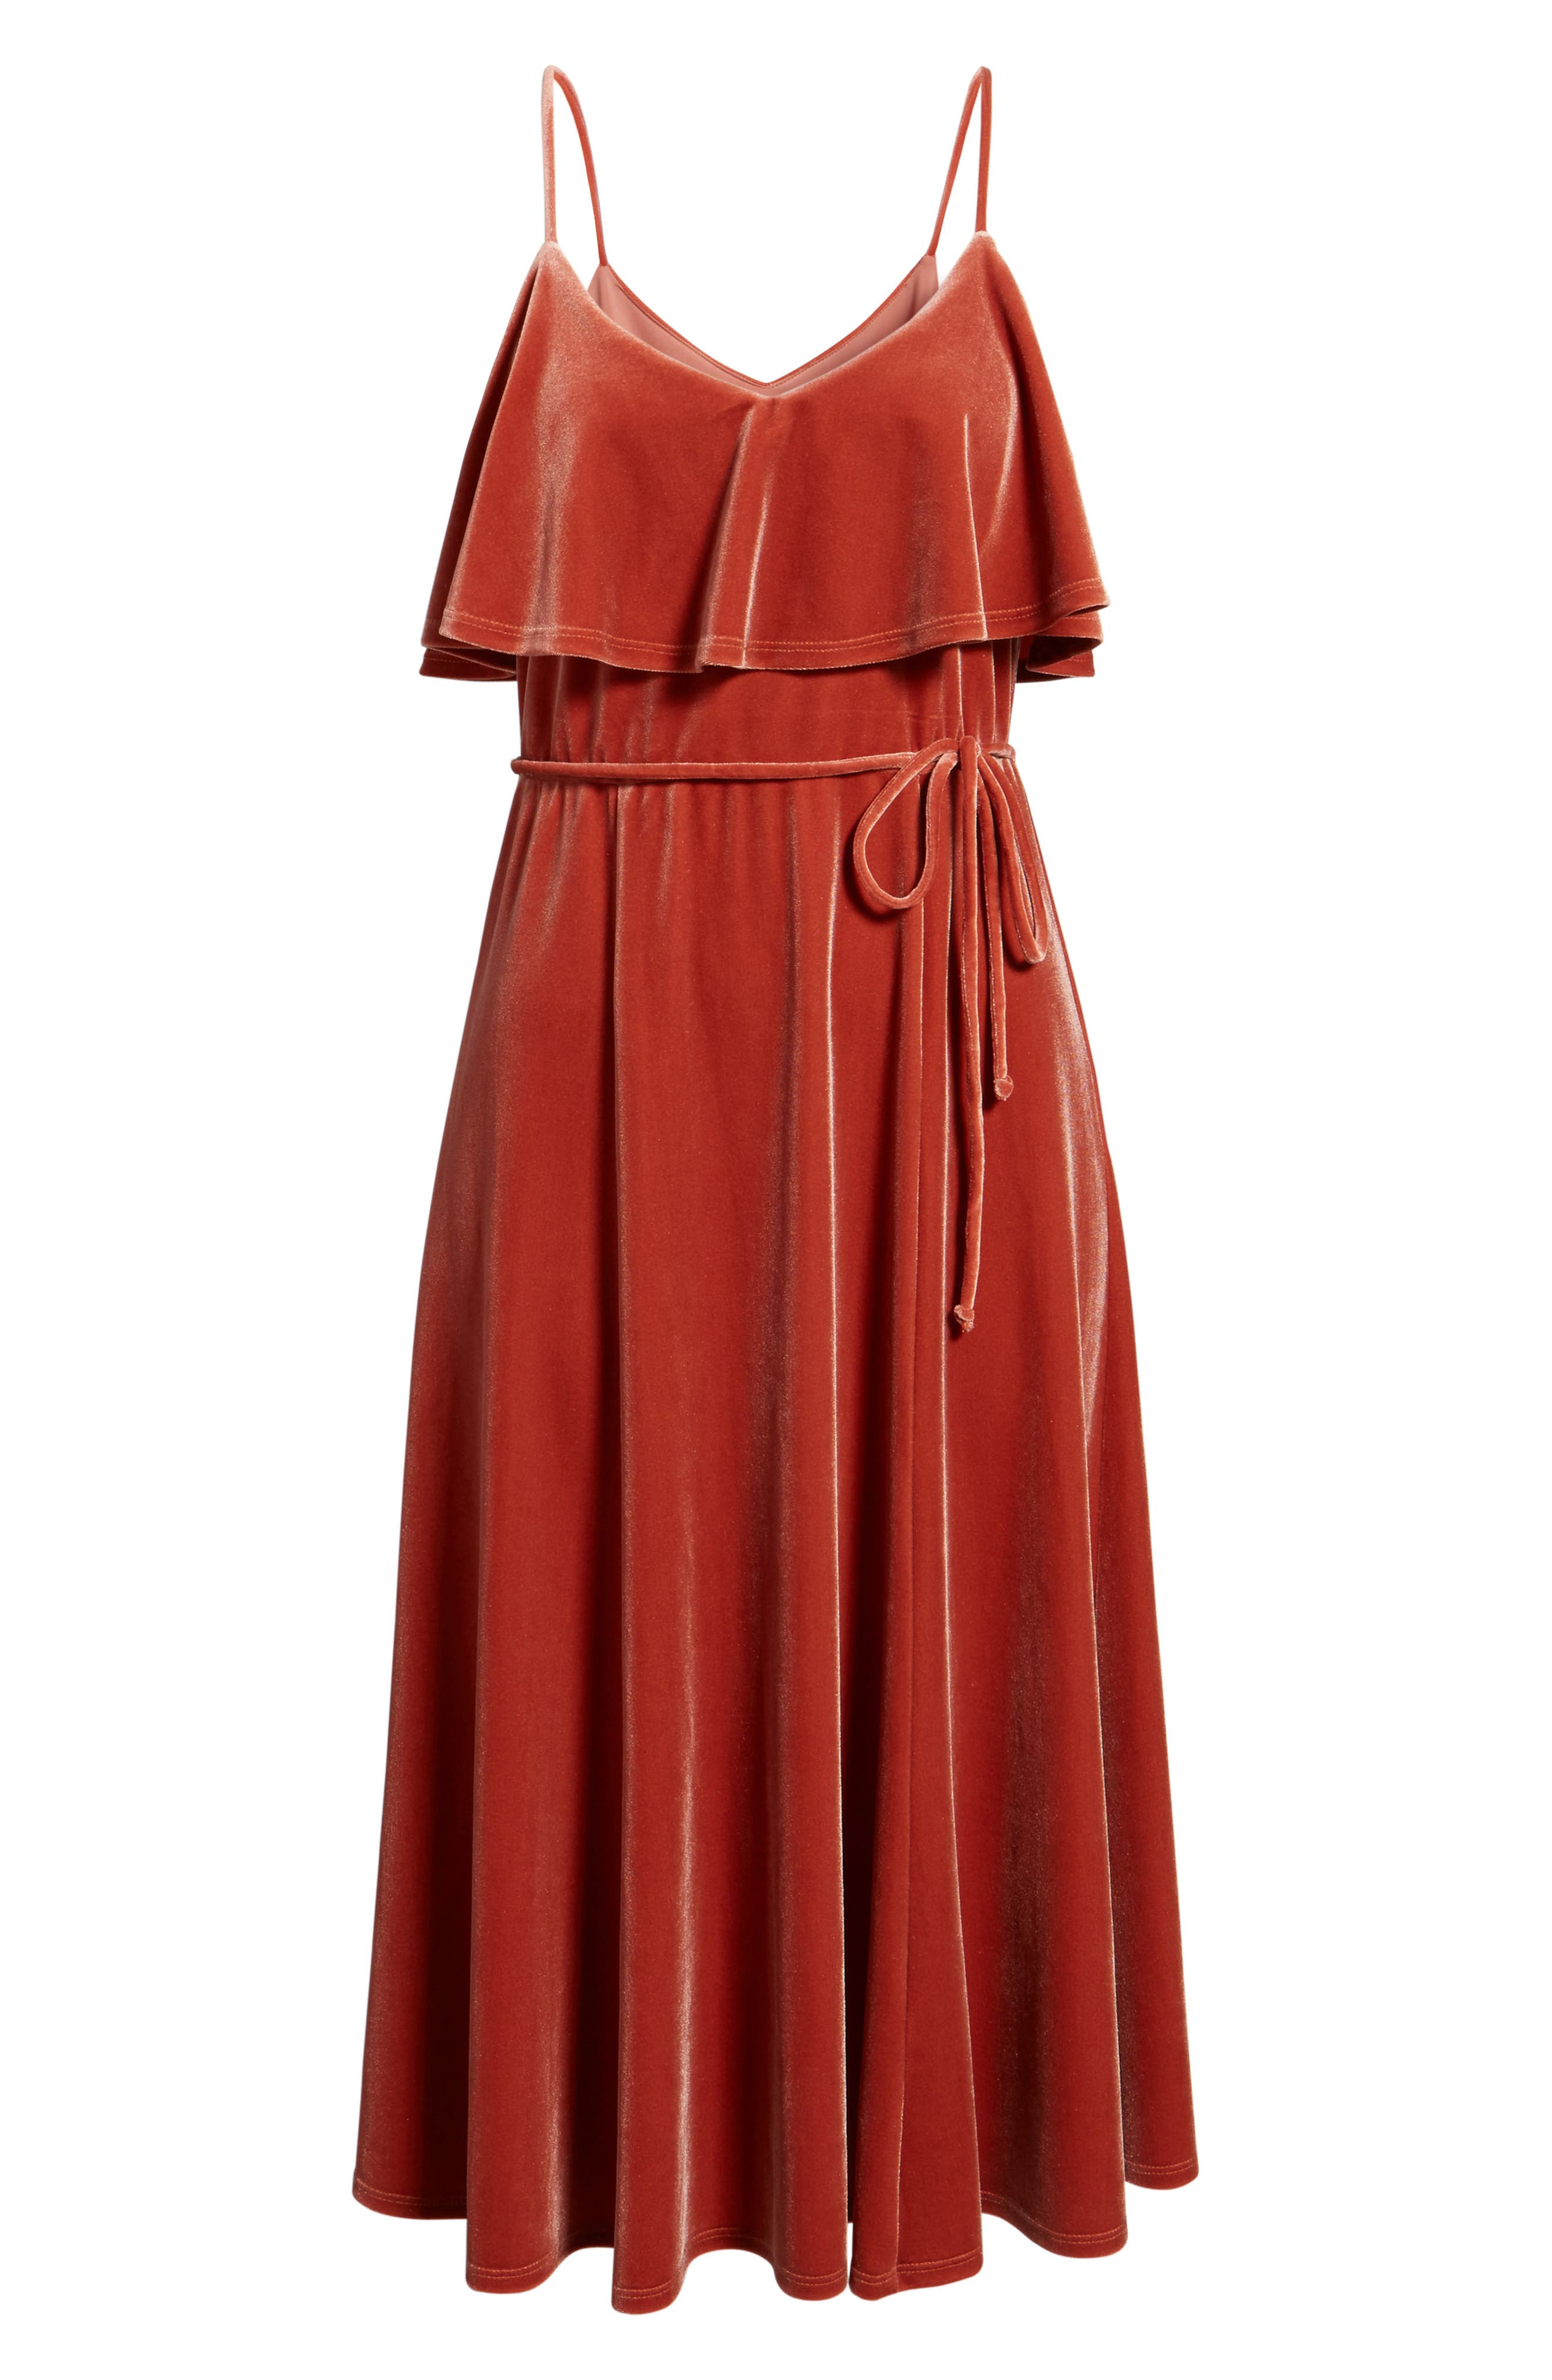 Velvet Midi Dress,                             Alternate thumbnail 6, color,                             Rust Marsala